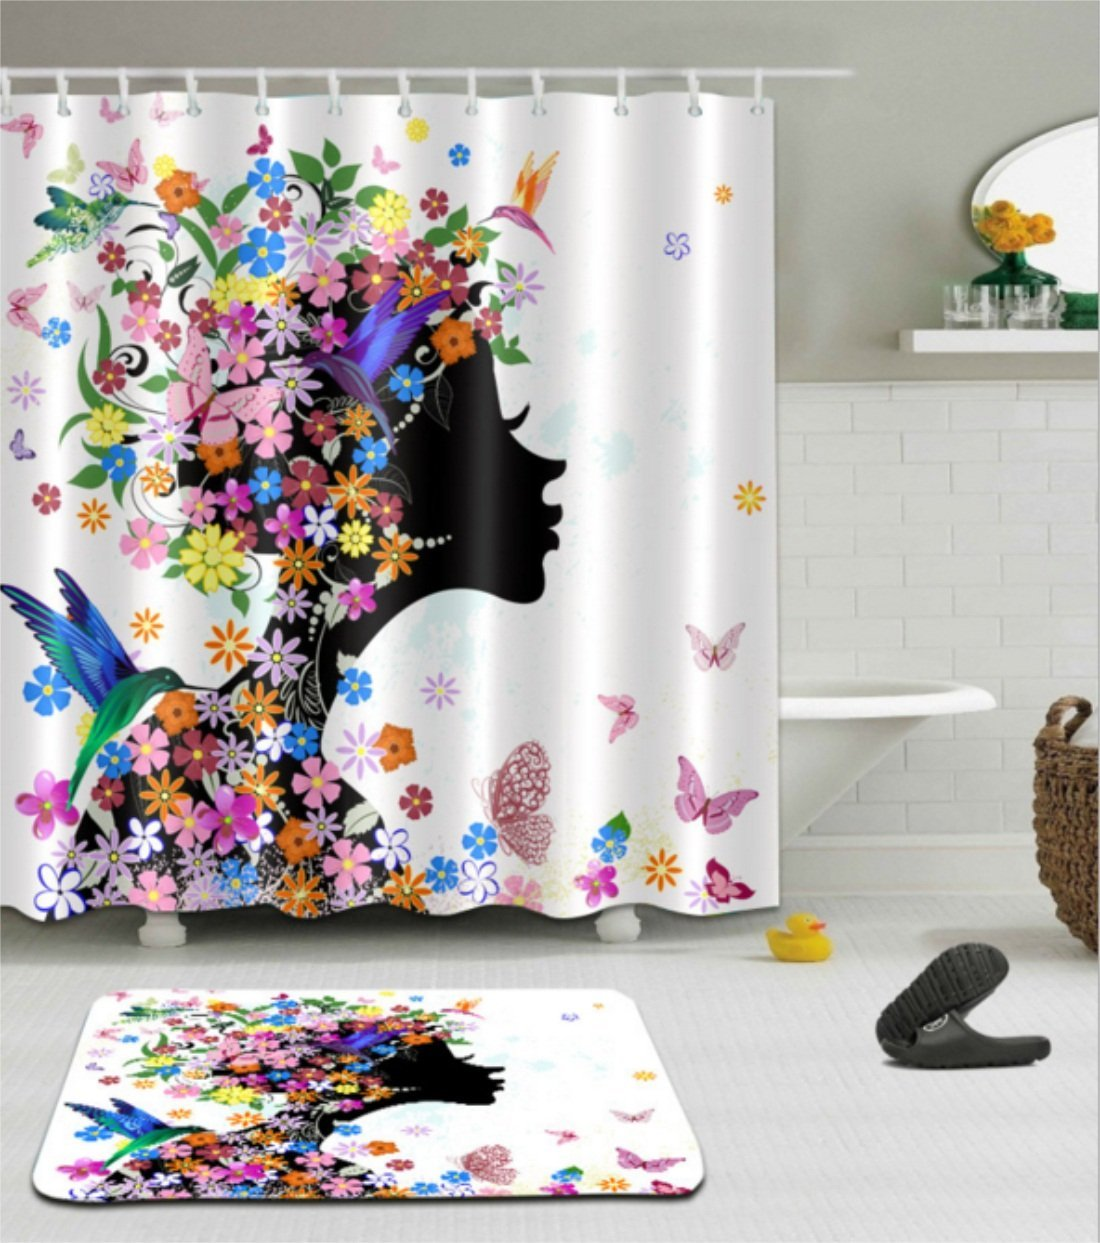 """Butterfly Shower Curtain Girl Decor by Chengsan, Girl Fashion Flowers with Butterflies Ornamental Floral Foliage Nature Forest Design, Polyester Fabric Bathroom Set with Hooks, 71""""W x 71""""L"""